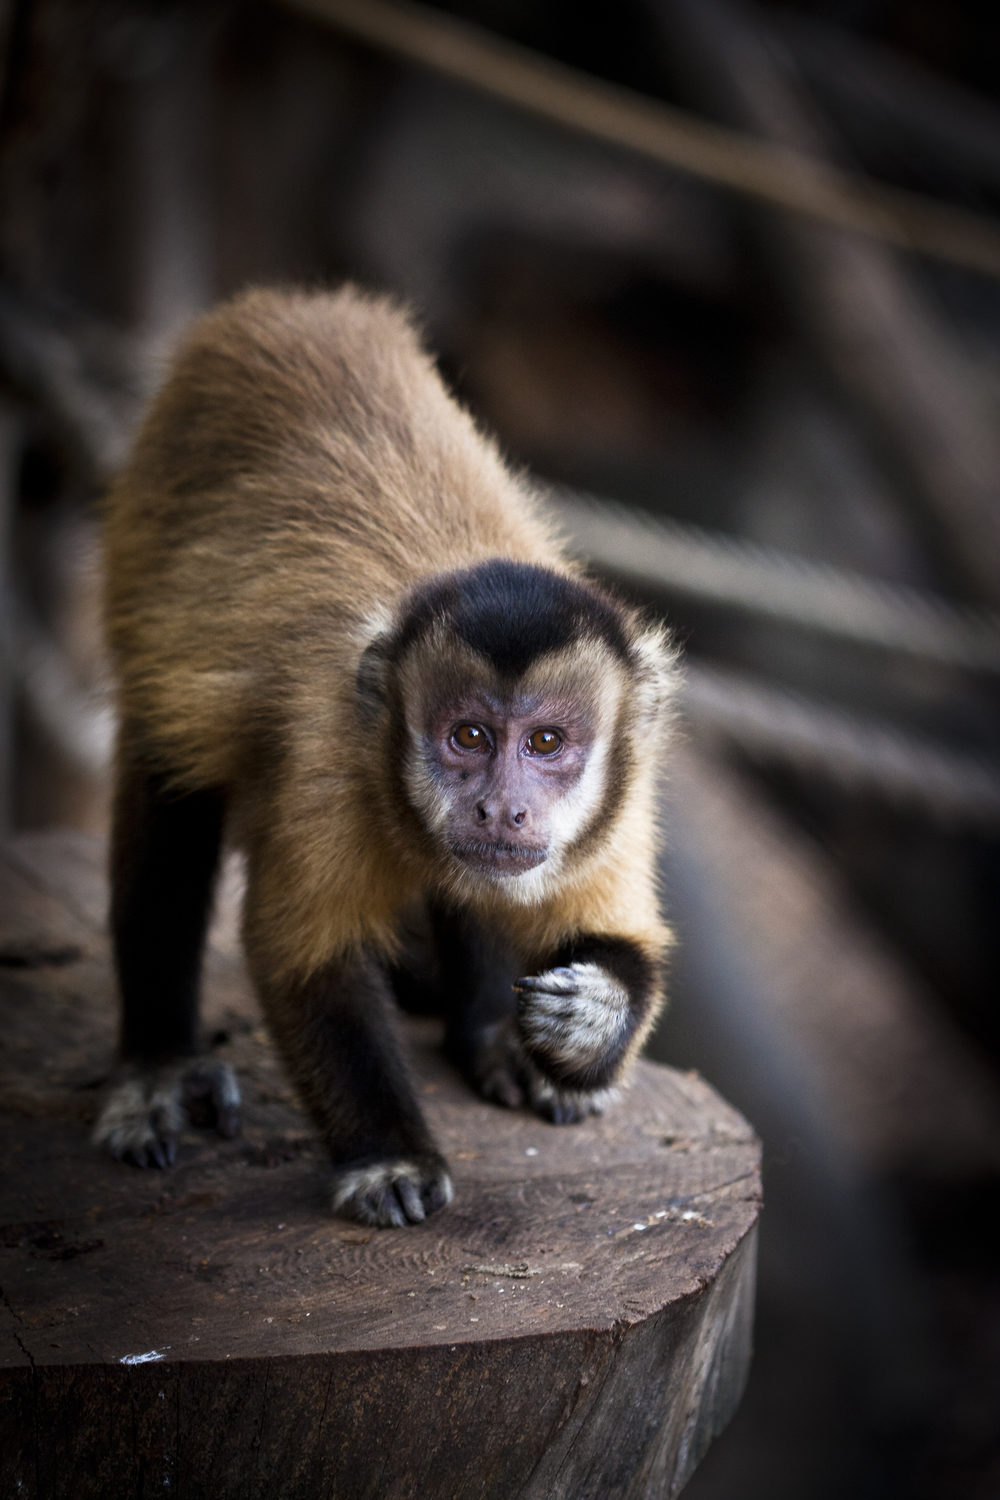 """Quincy, an adult female capuchin monkey (Sapajus spp.). Quincy is one of the 24 capuchins hosted in four groups at the Unit of Cognitive Primatology of the Istituto di Scienze e Tecnologie della Cognizione, CNR, in Rome, Italy,where the project """"Emotional basis of primate reciprocity"""" is being carried out. Photo credit: Sabrina Rossi"""